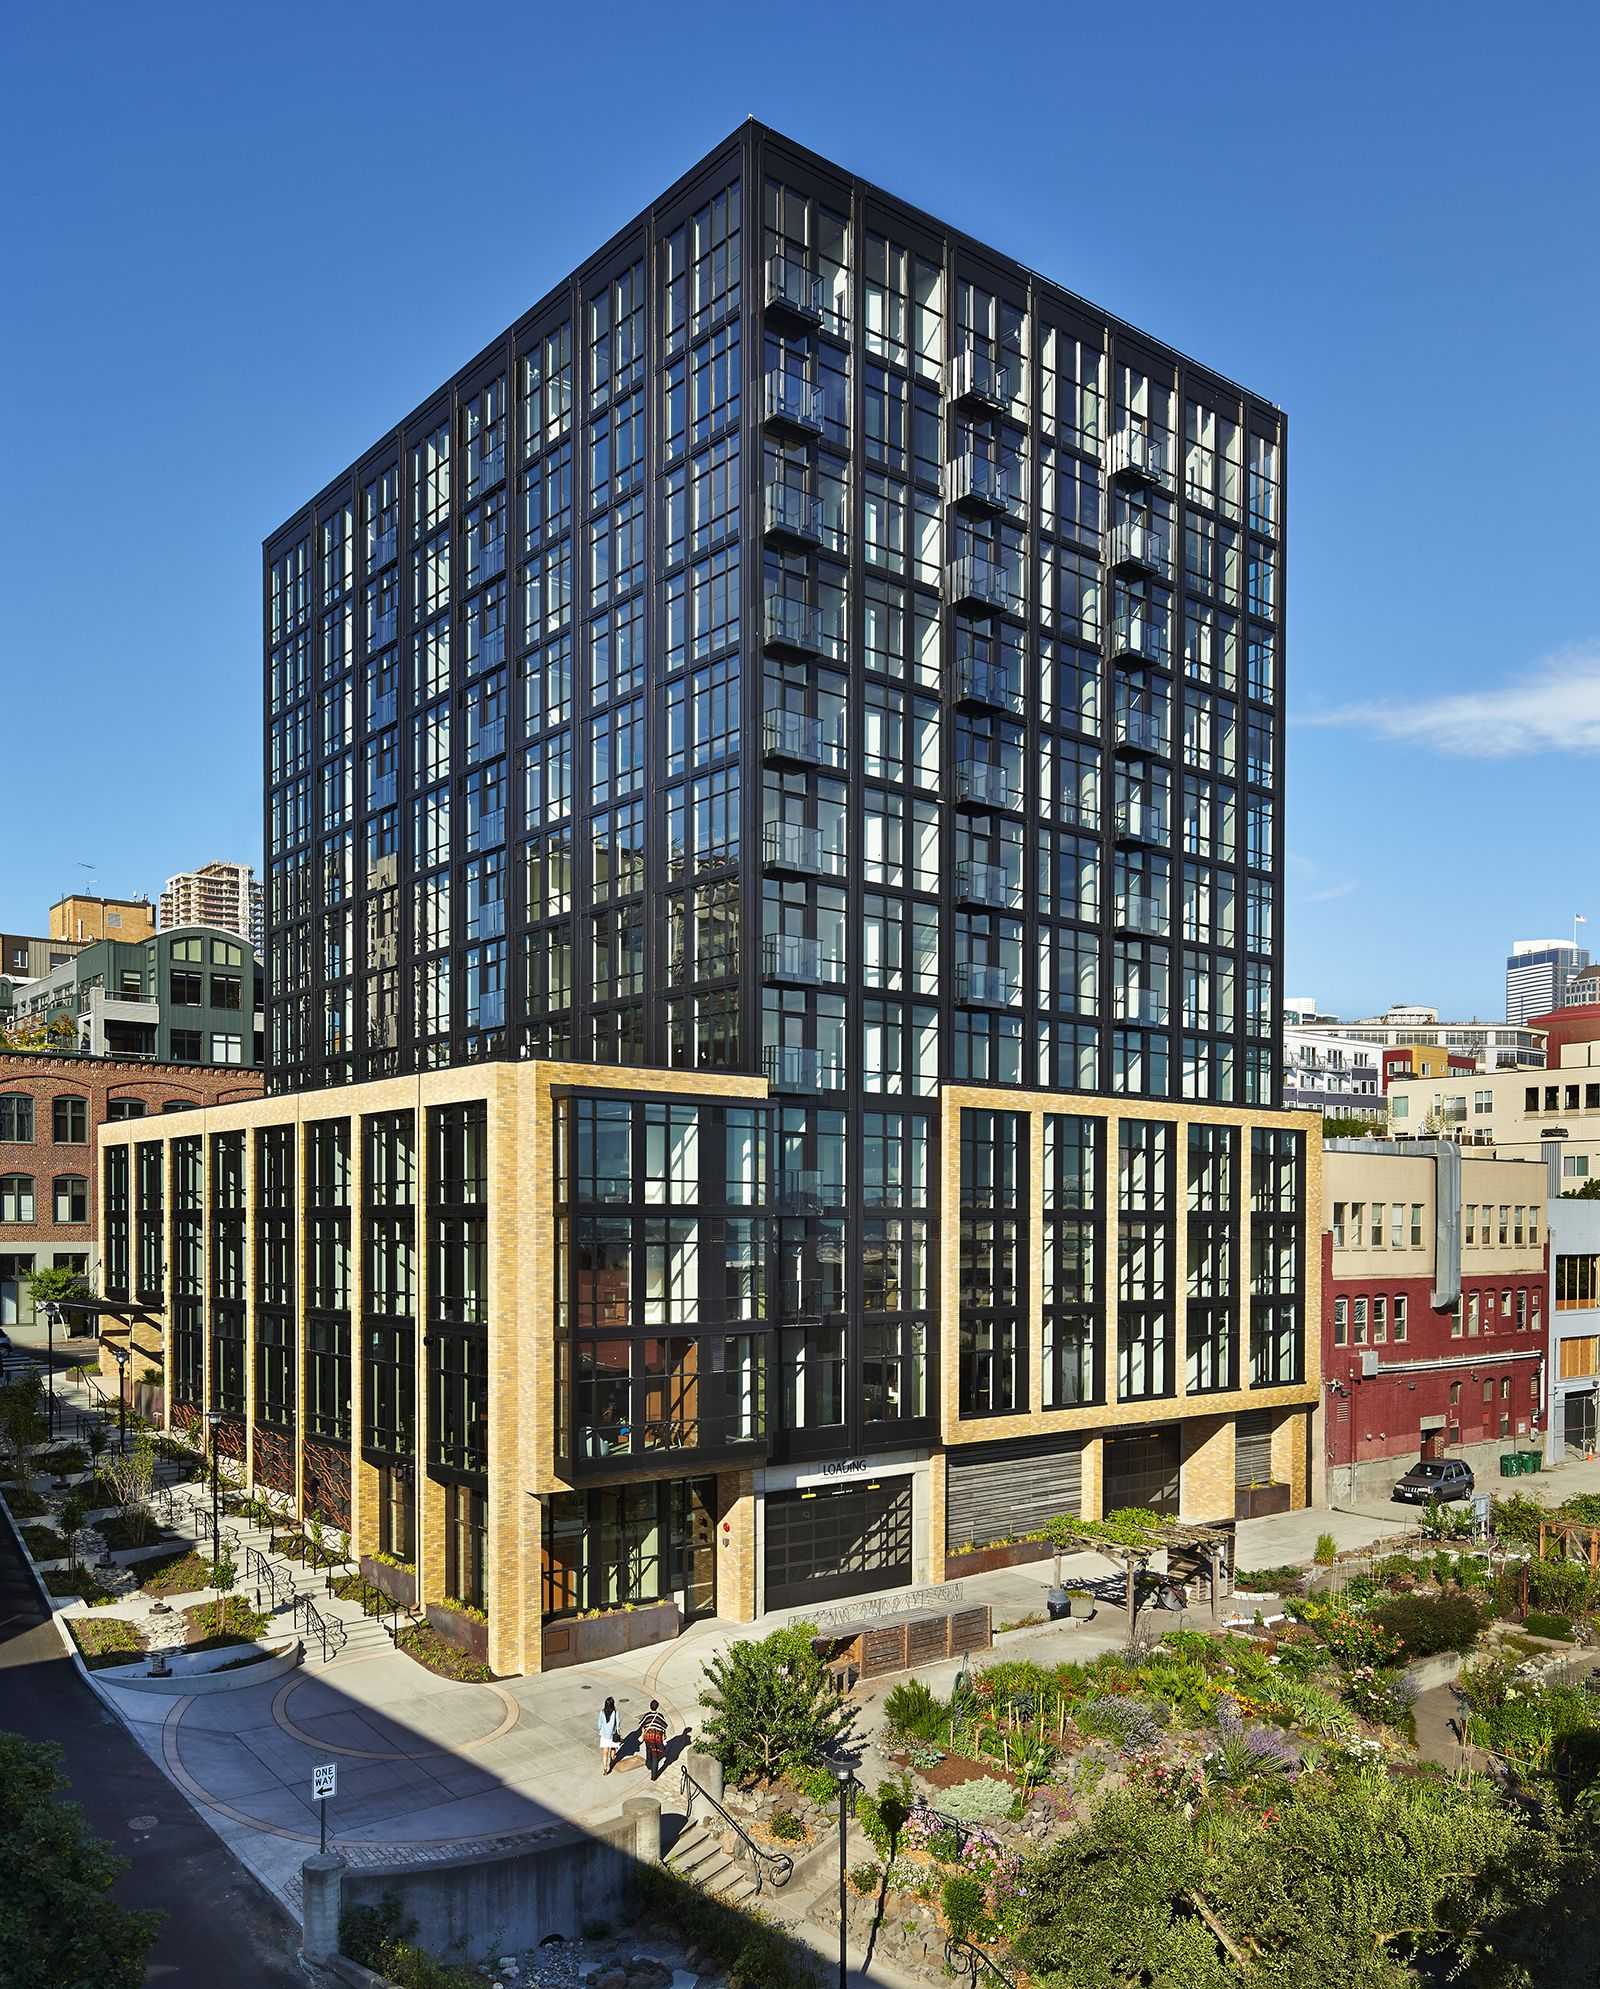 Brilliant Image Of Apartments Architecture Building Urban Housing Multi Family Lofts Architects